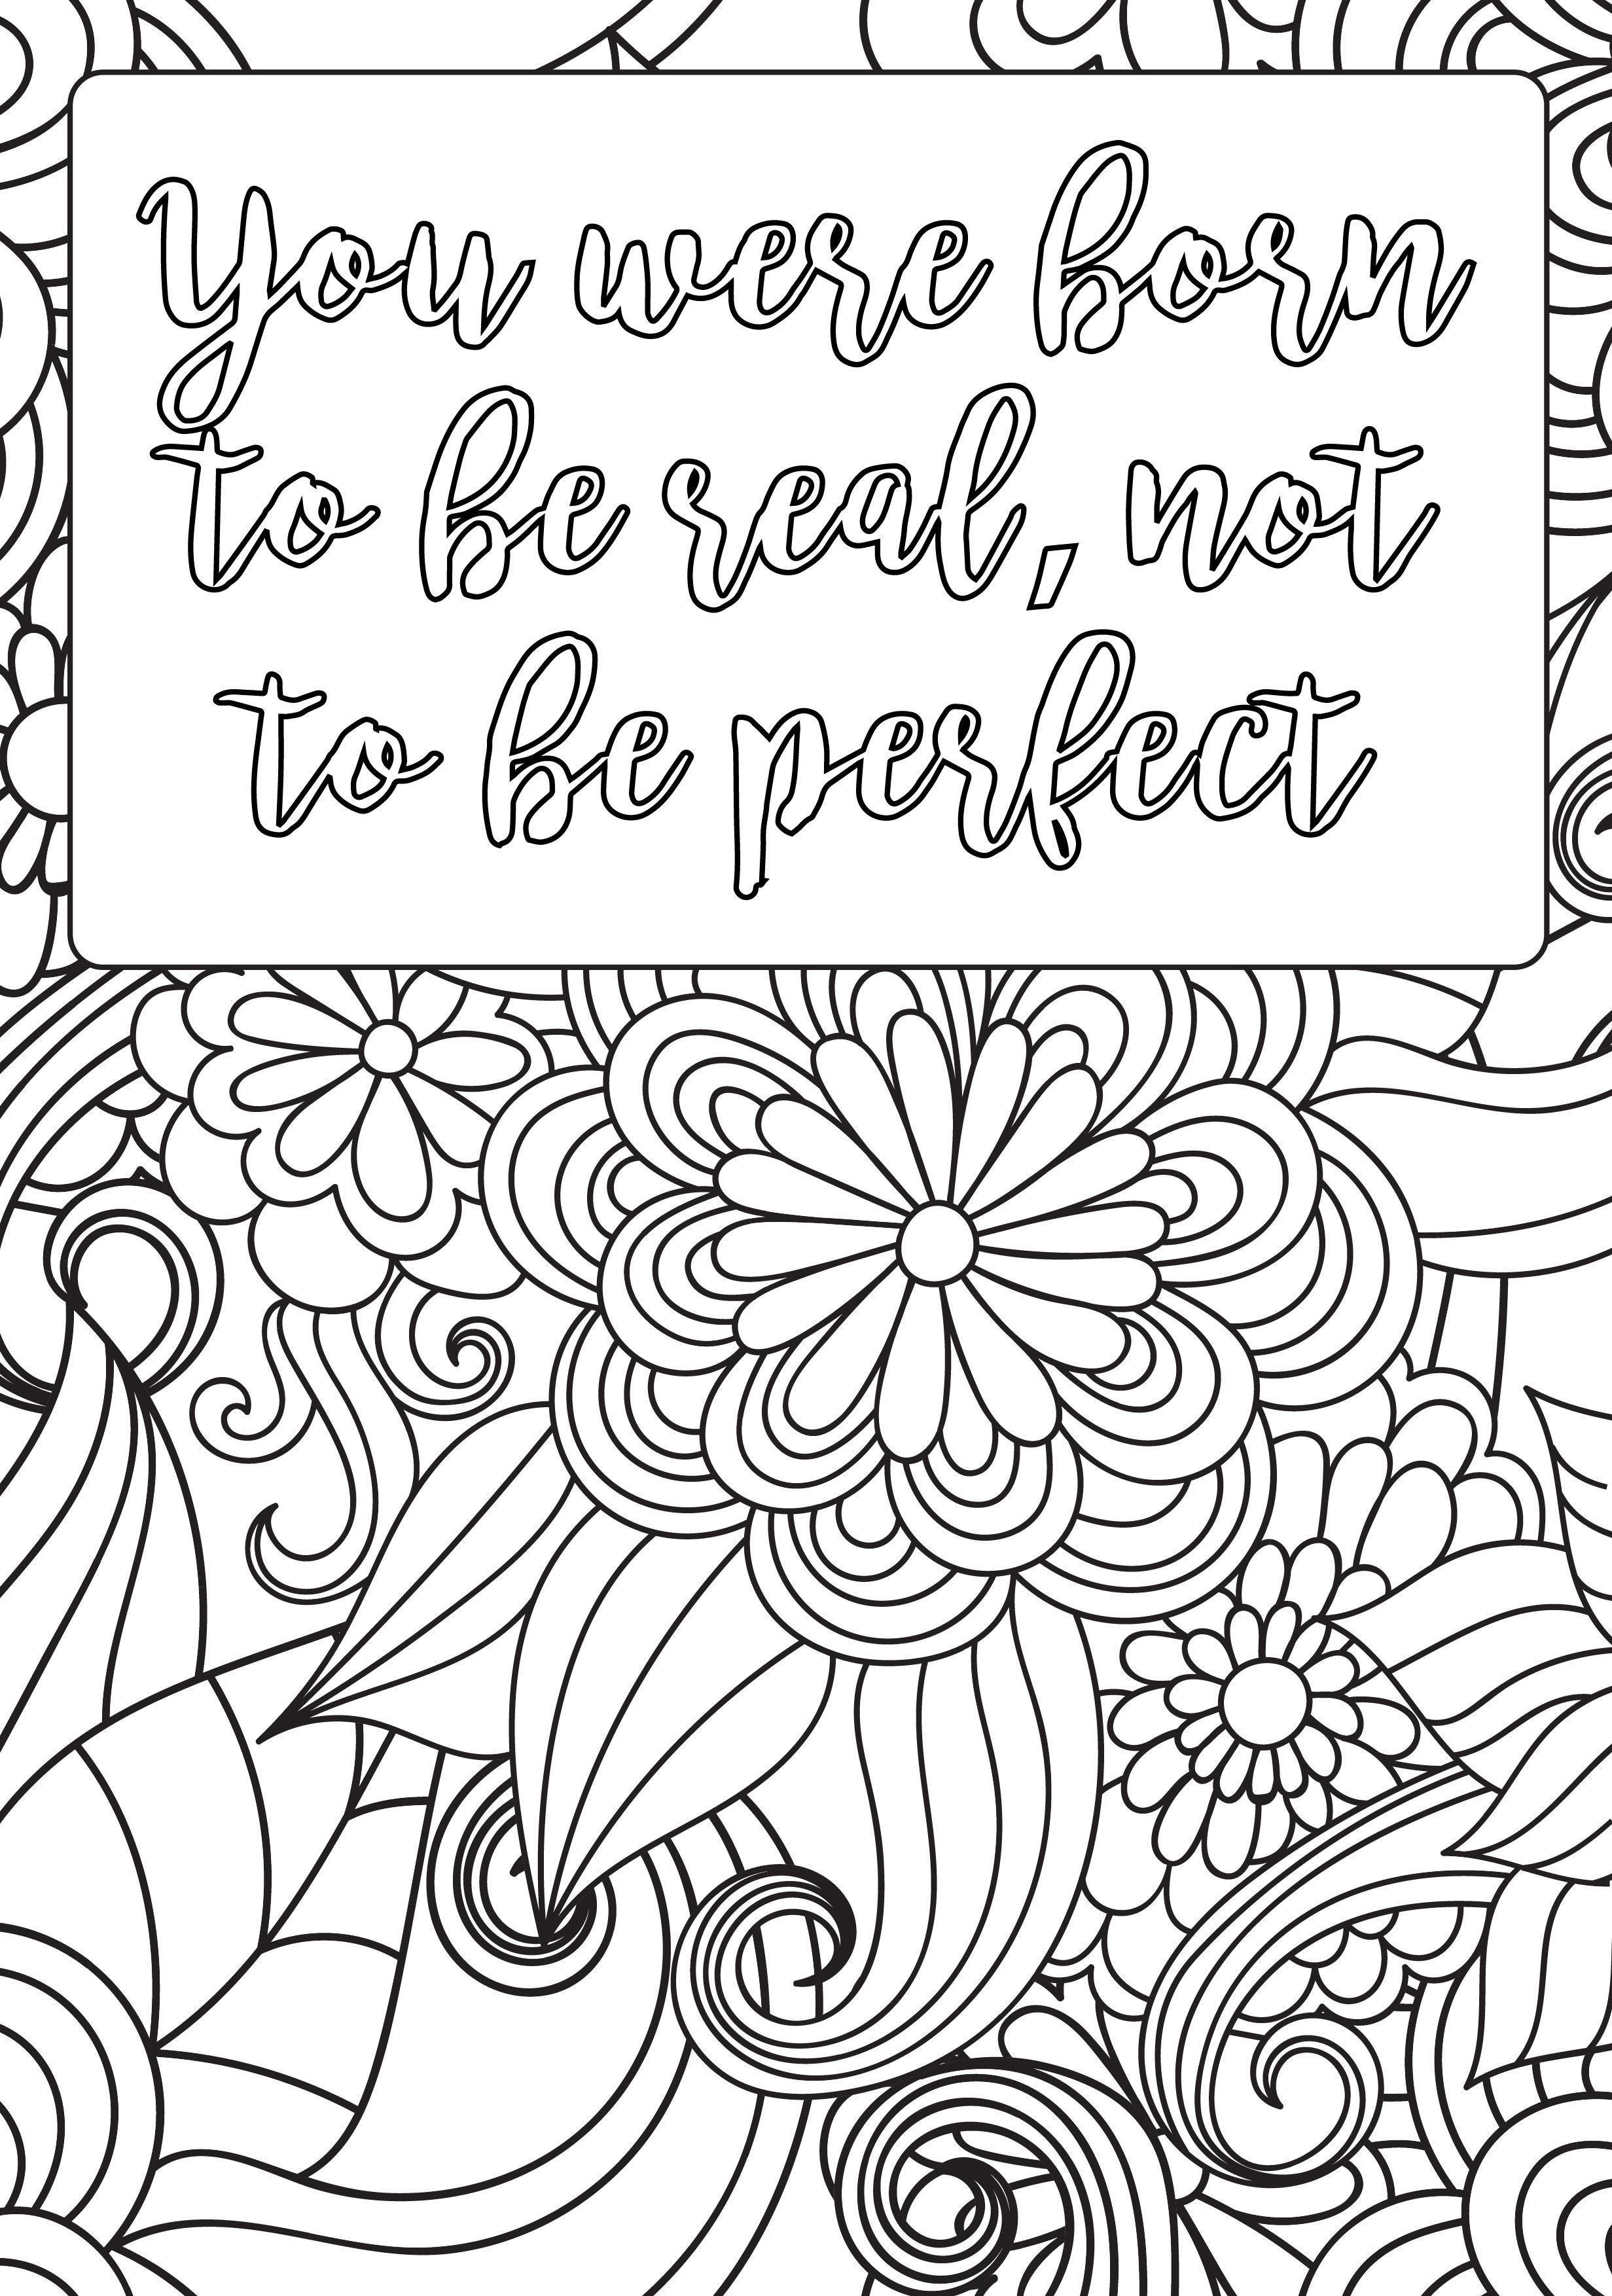 Self Esteem Positive Coloring Page